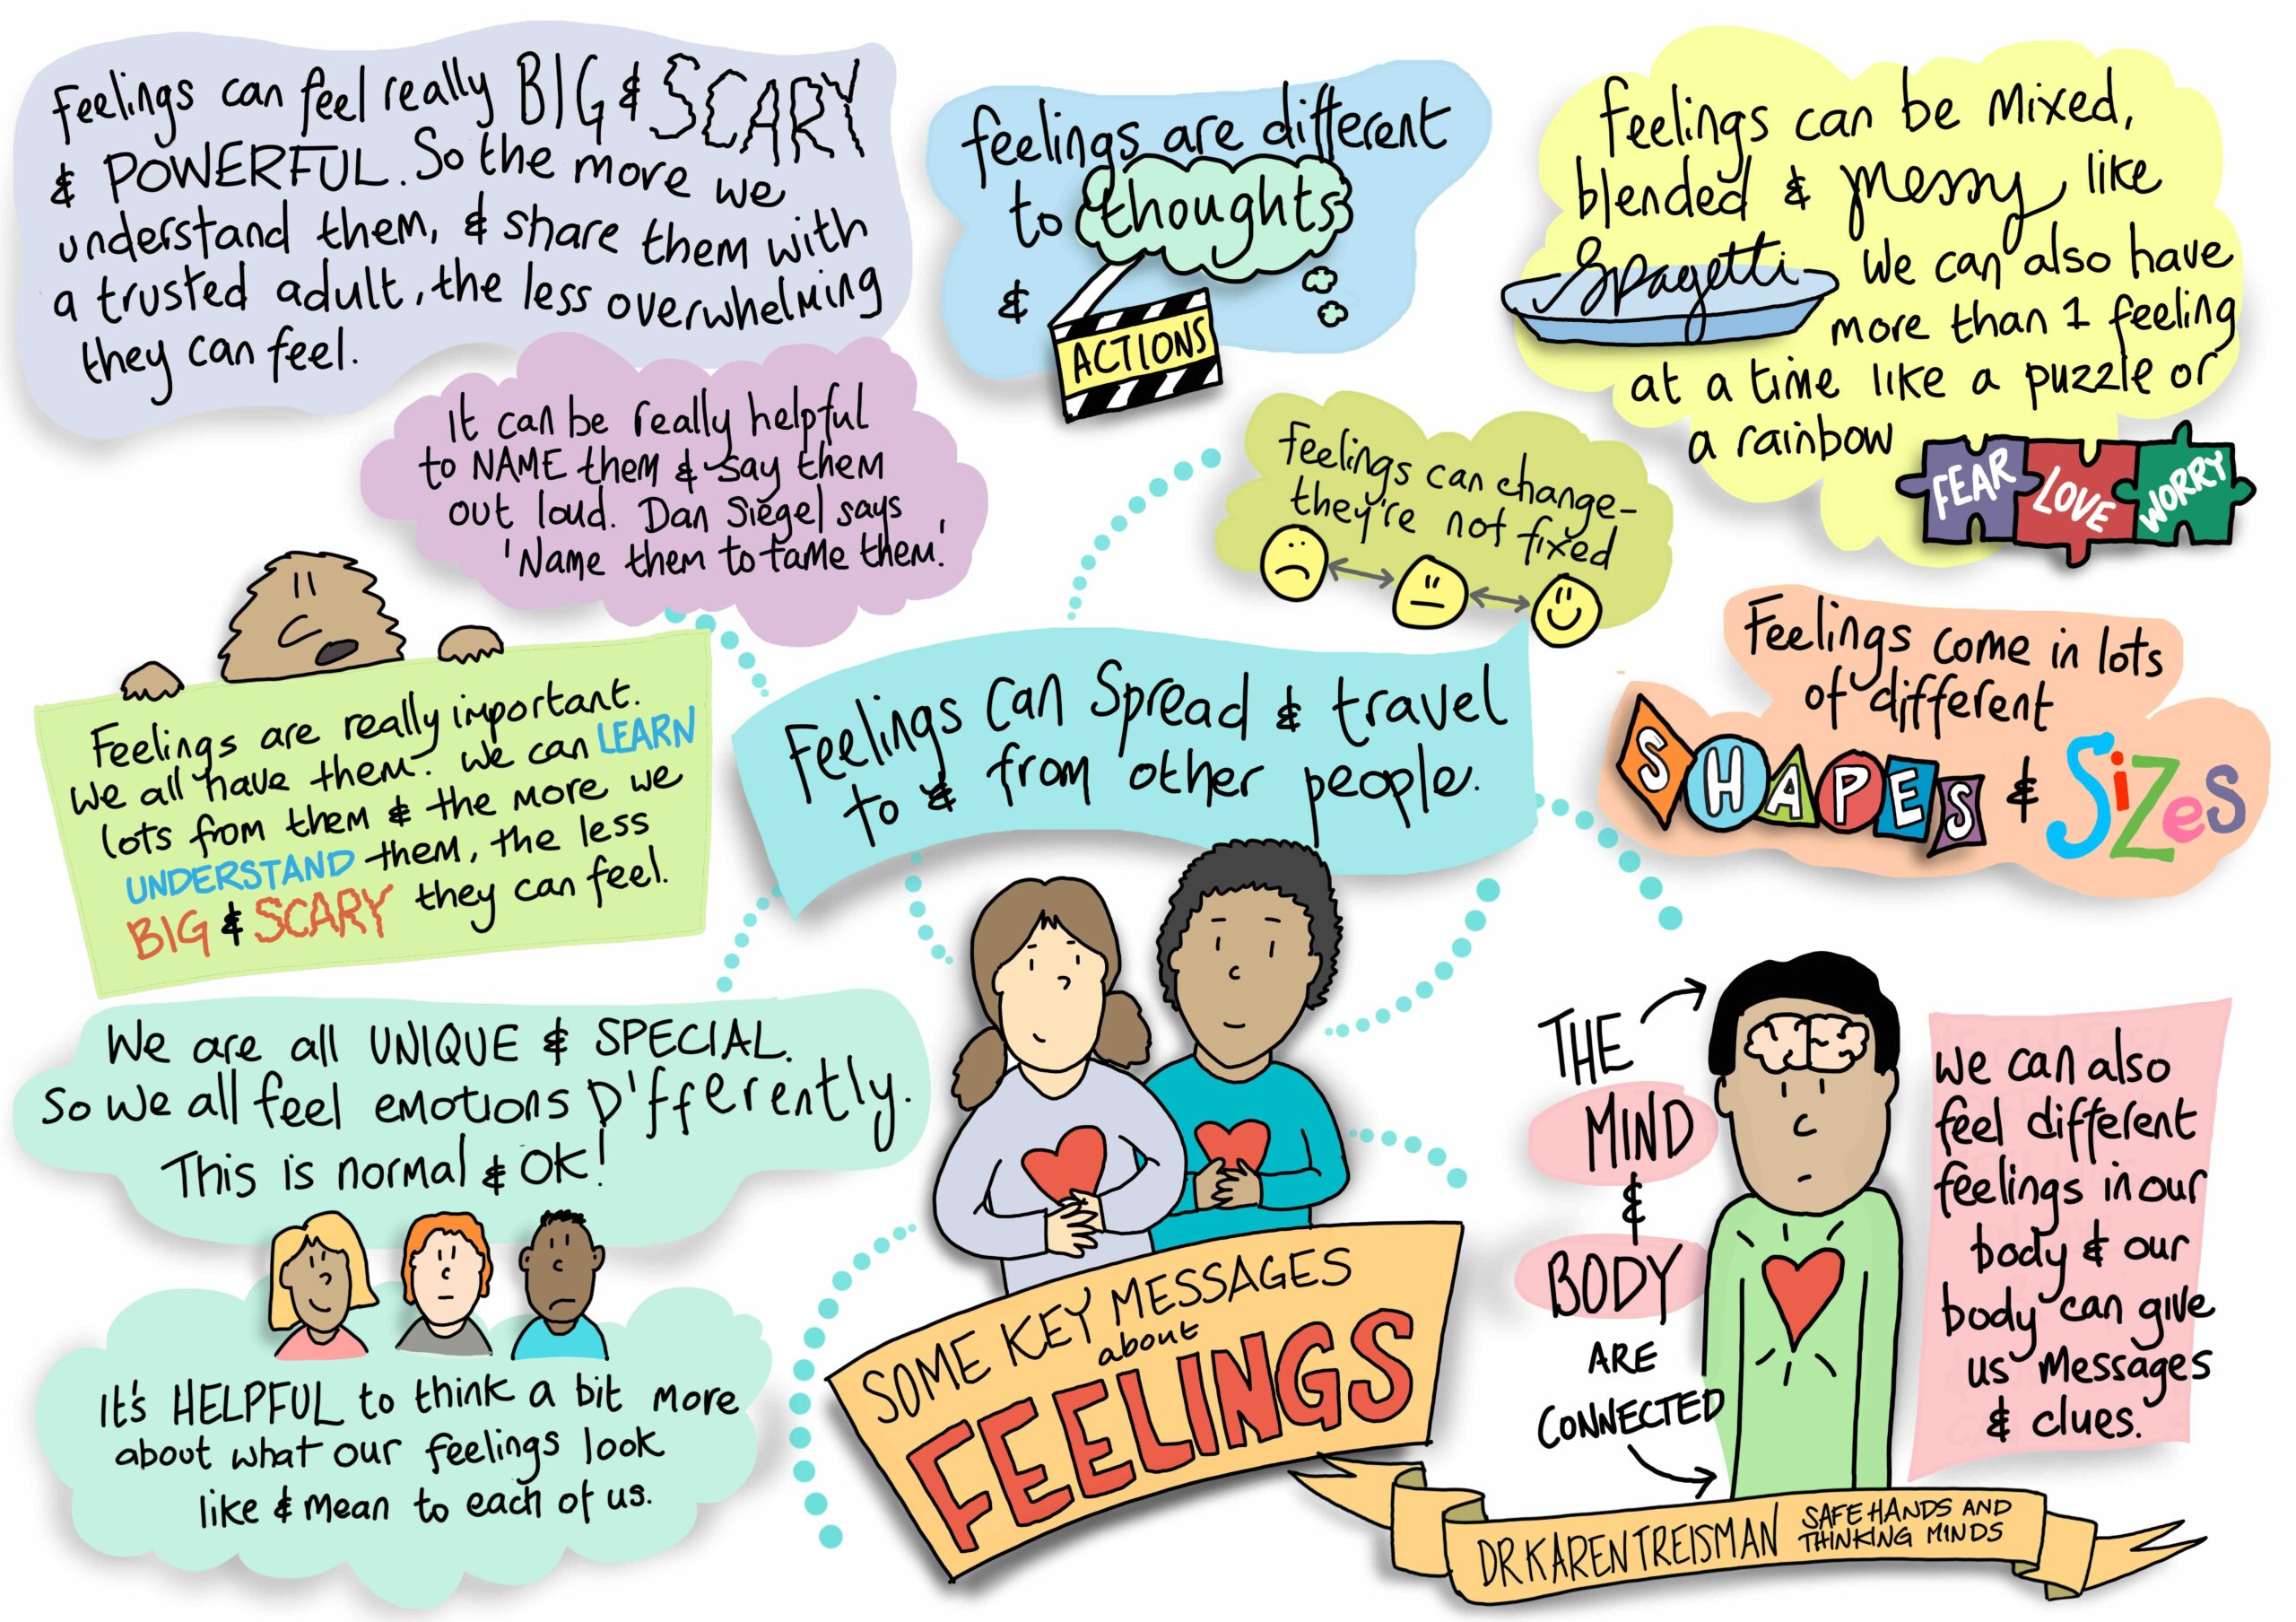 Messages About Feelings - Infographic For Dr Karen Treisman